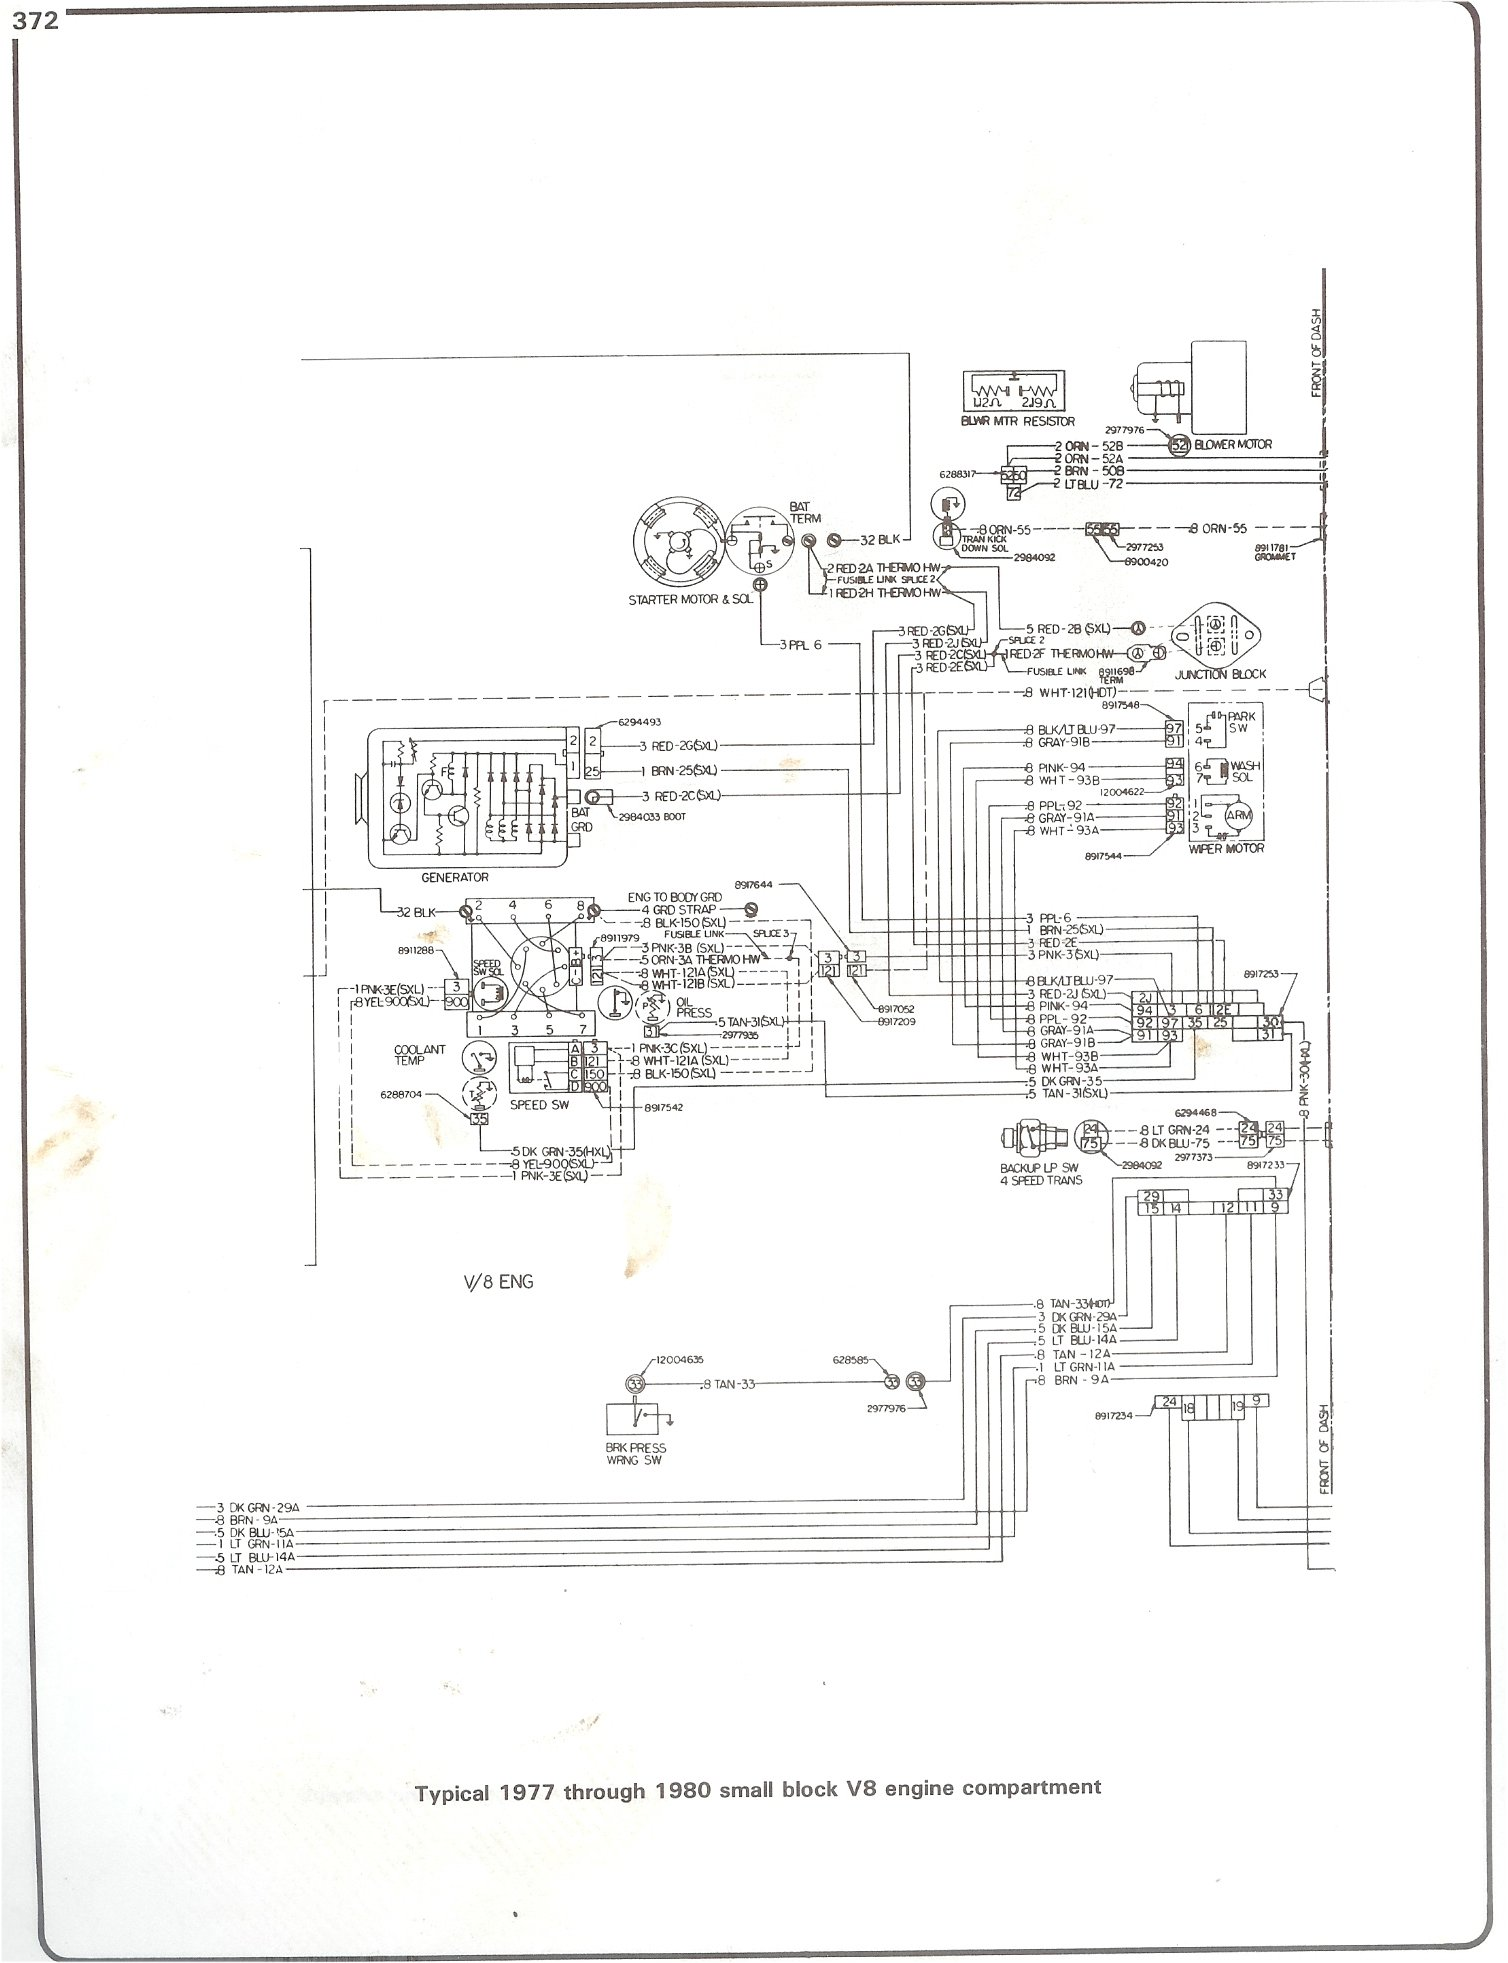 wiring diagram 1983 350 chevy k10